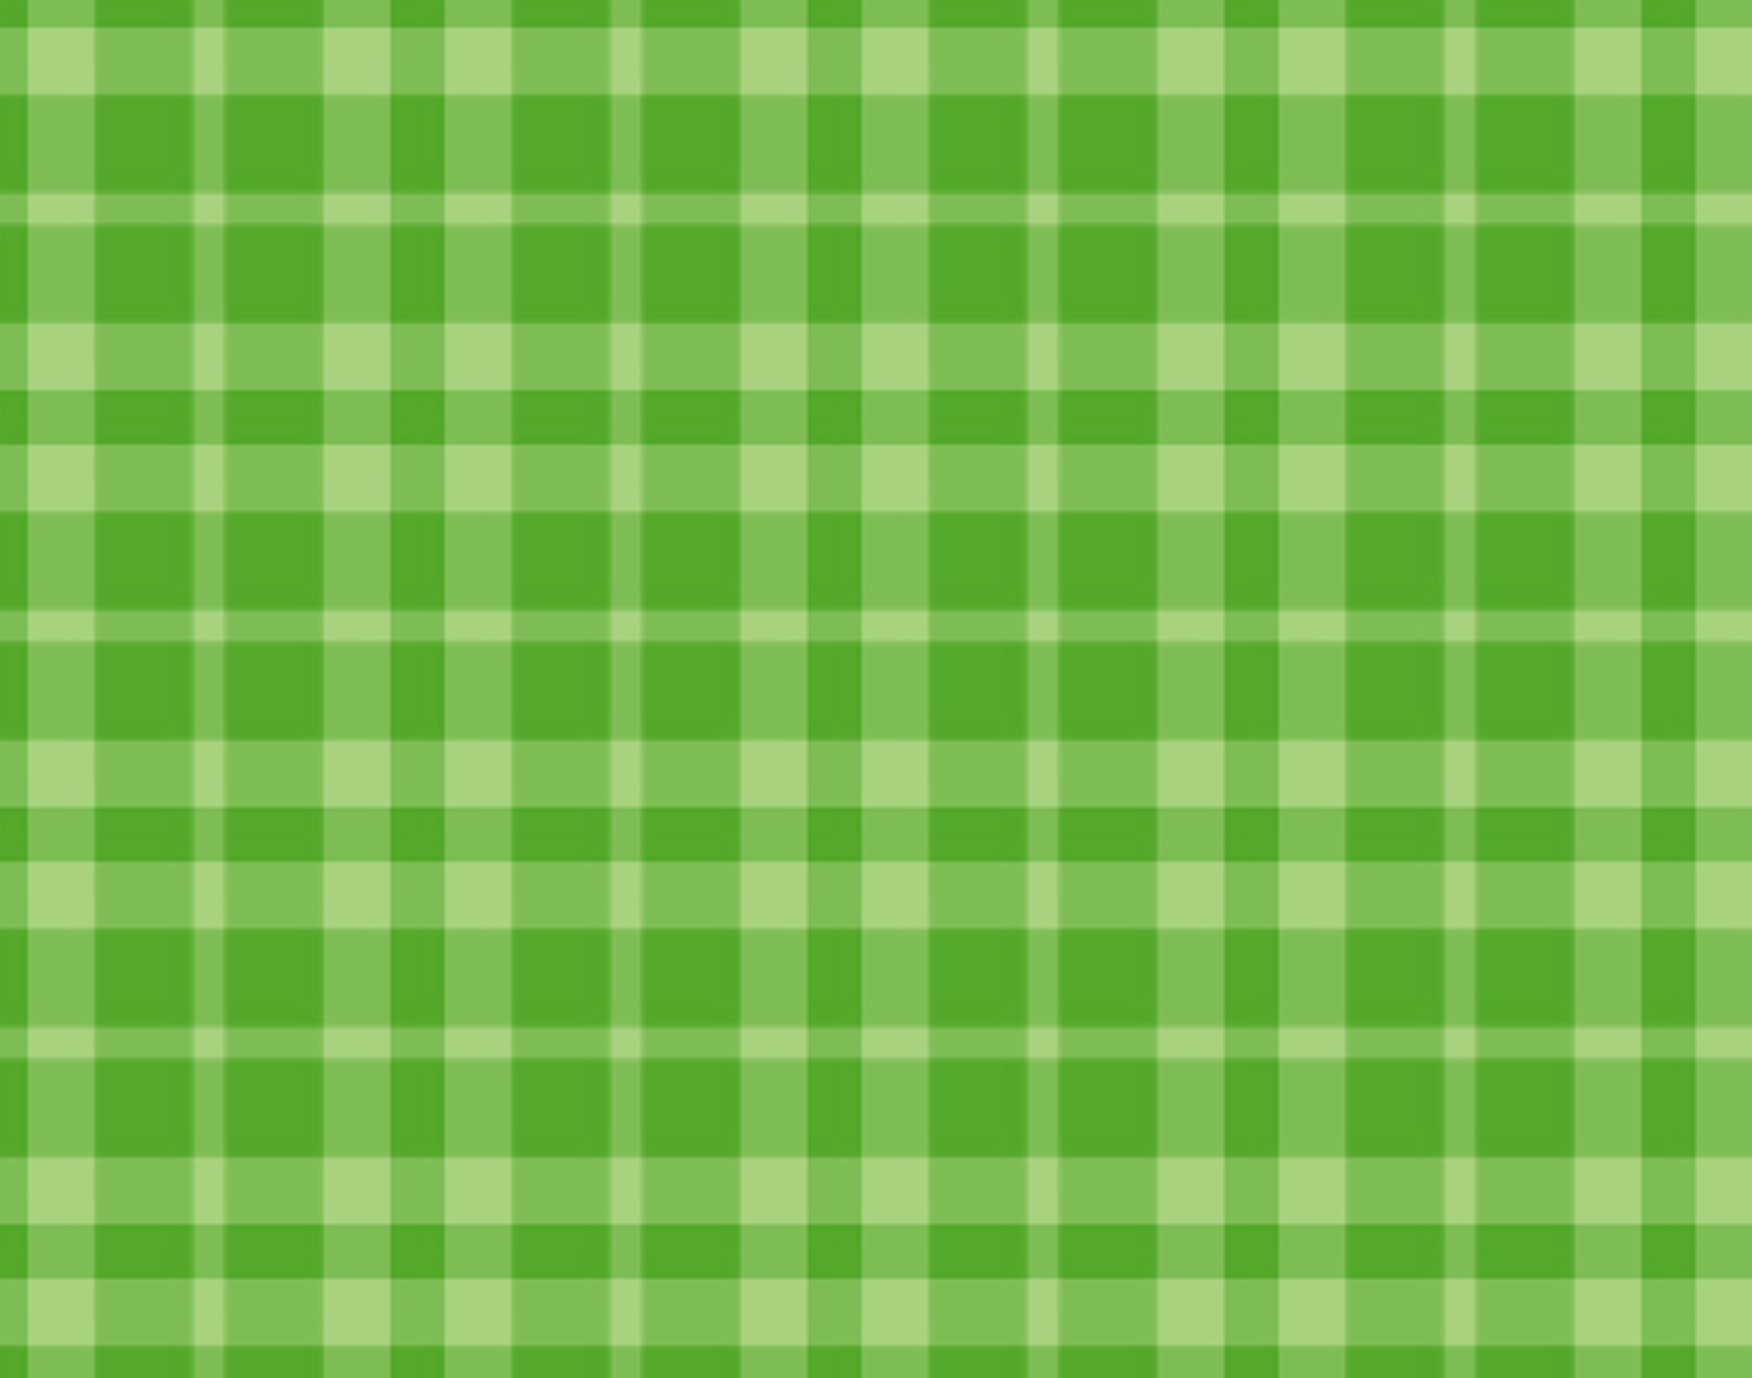 Download image Green Plaid PC Android iPhone and iPad Wallpapers 1752x1378